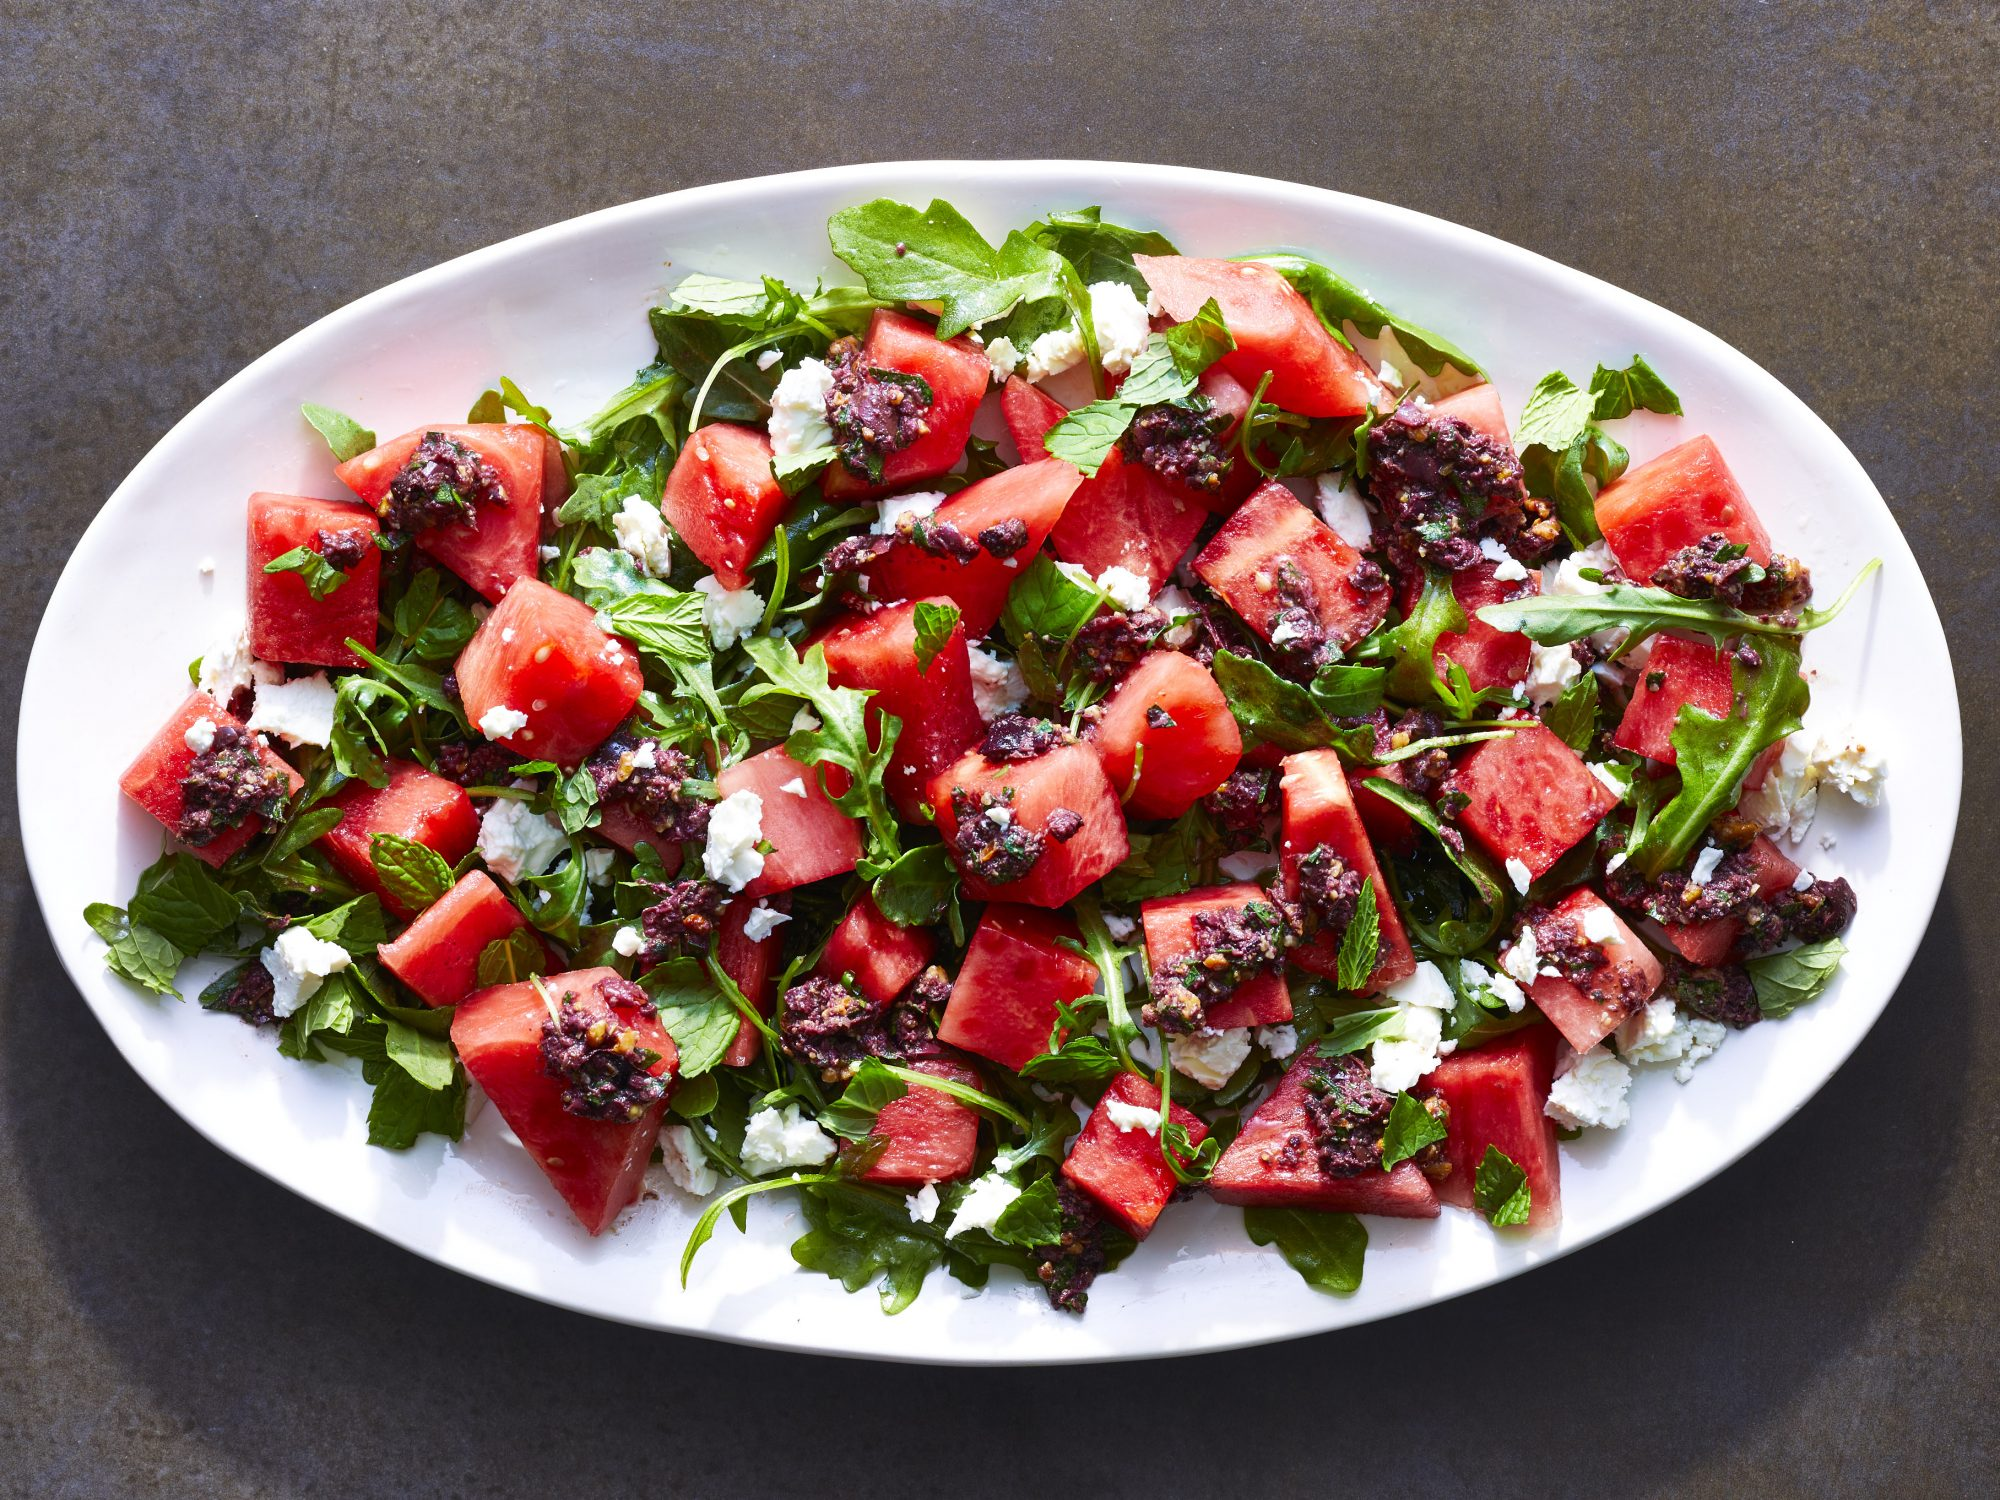 Watermelon Salad with Kalamata Olive Vinaigrette